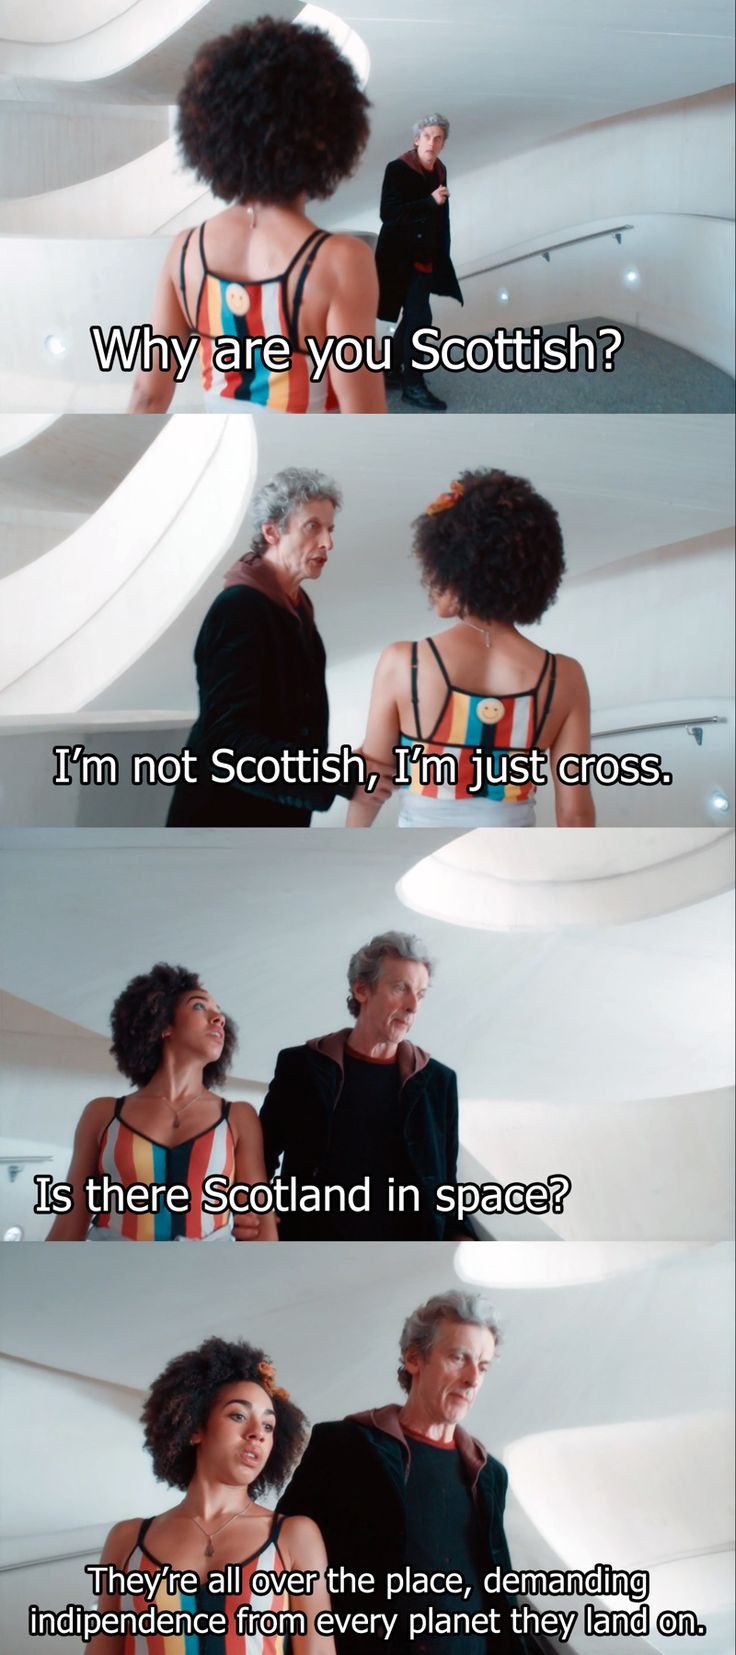 "Bill: Why are you Scottish? The Doctor: I'm not Scottish, I'm just cross. Bill: Is there Scotland in space? The Doctor: They're all over the place. Demanding independence from every planet that they land on. #DoctorWho 10x02 ""Smile"""